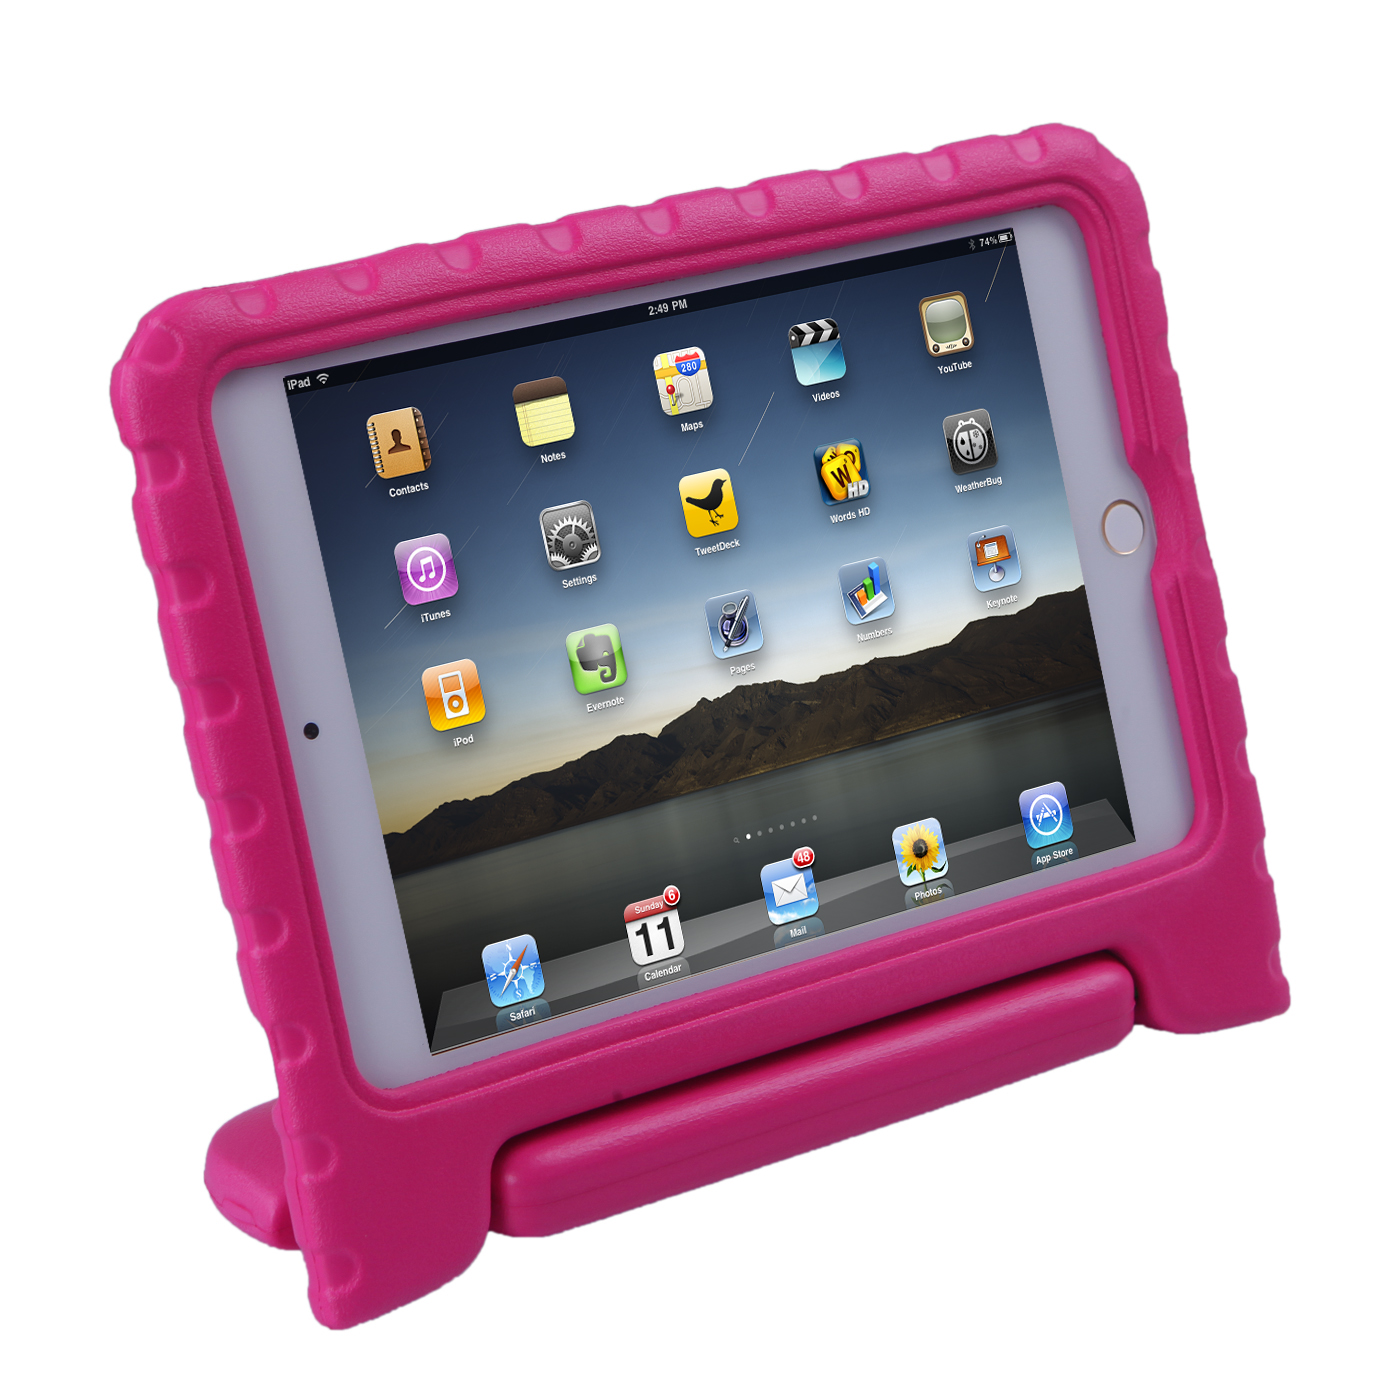 HDE iPad Mini 4 Case for Kids Shockproof Handle Stand Protective Cover for Apple iPad Mini 4 Retina (Pink)